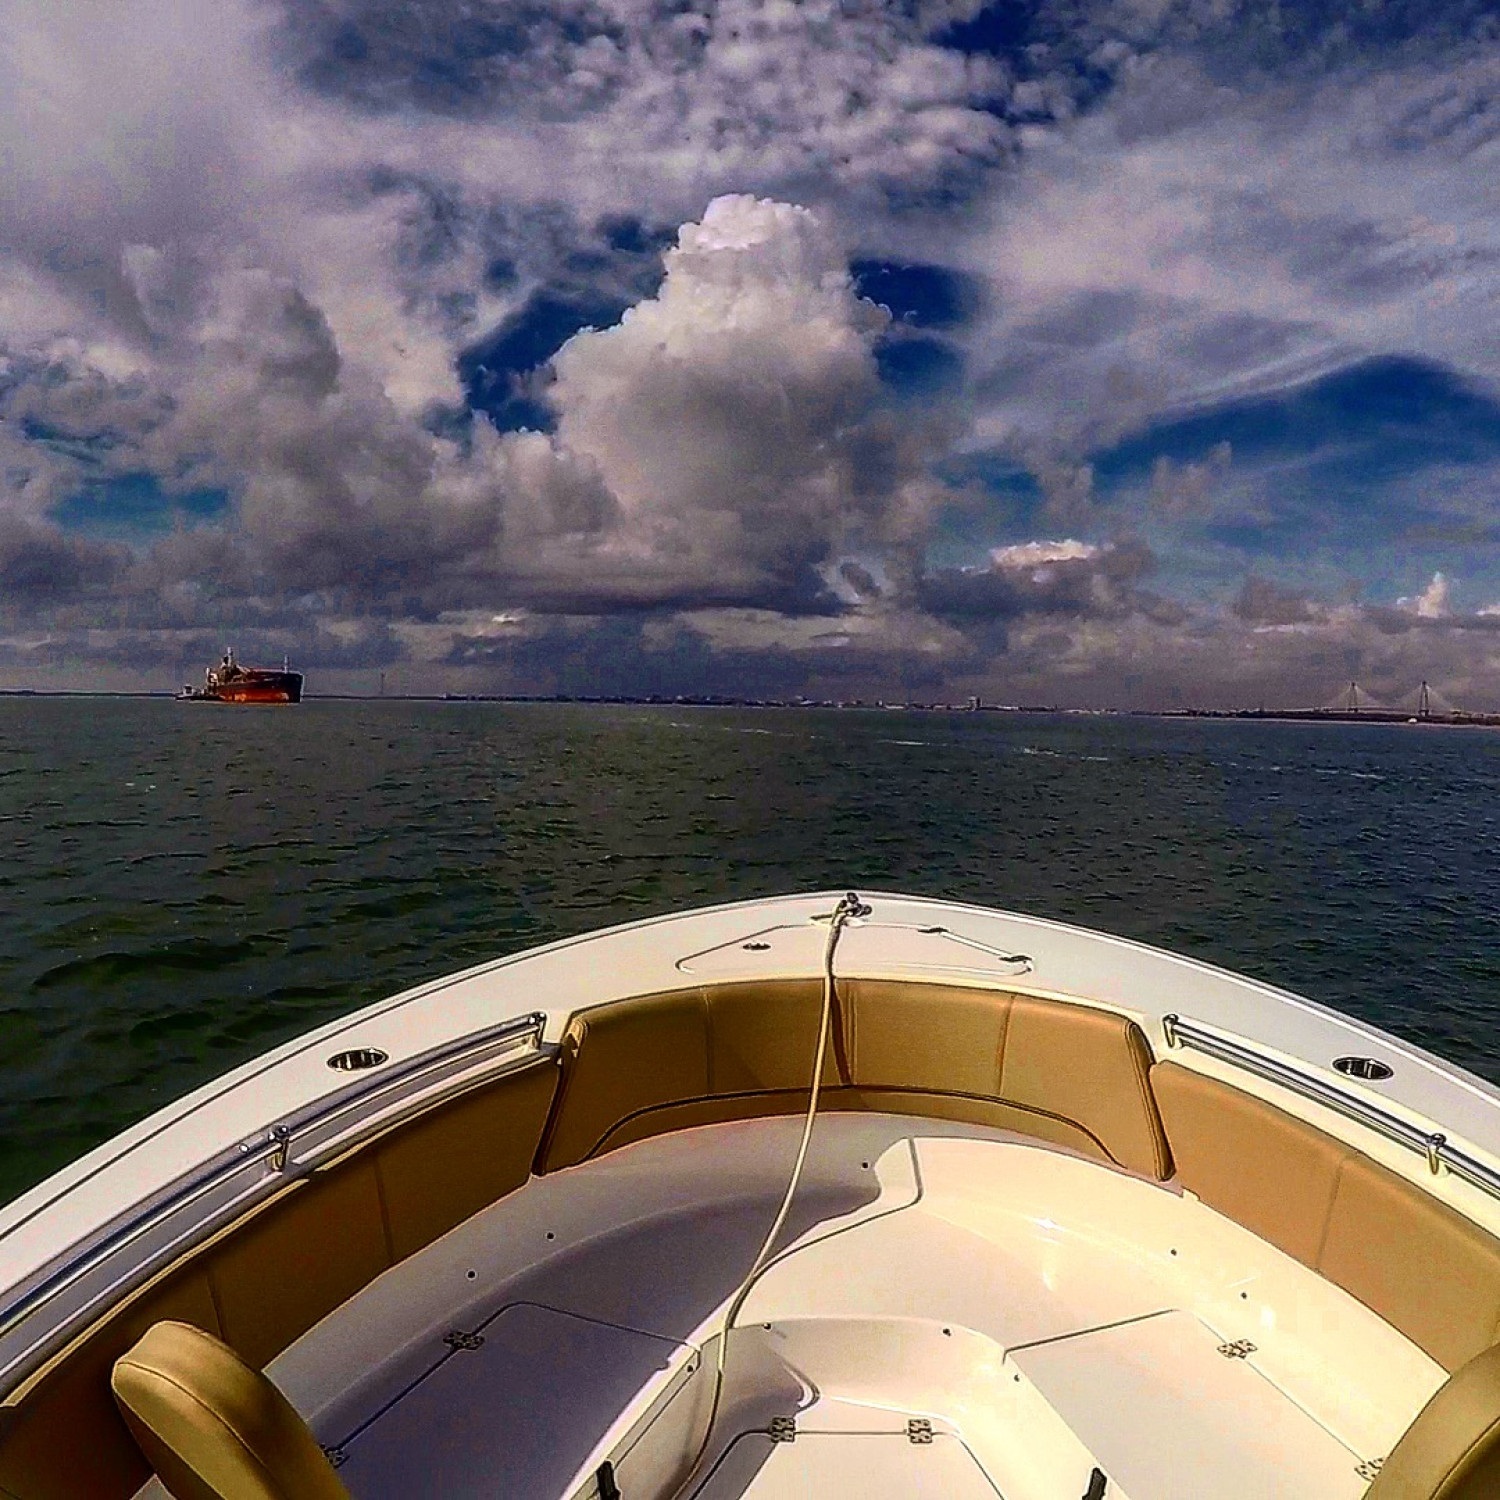 Title: Clouds over Bow - On board their Sportsman Heritage 231 Center Console - Location: Charleston, SC. Participating in the Photo Contest #SportsmanFebruary2018